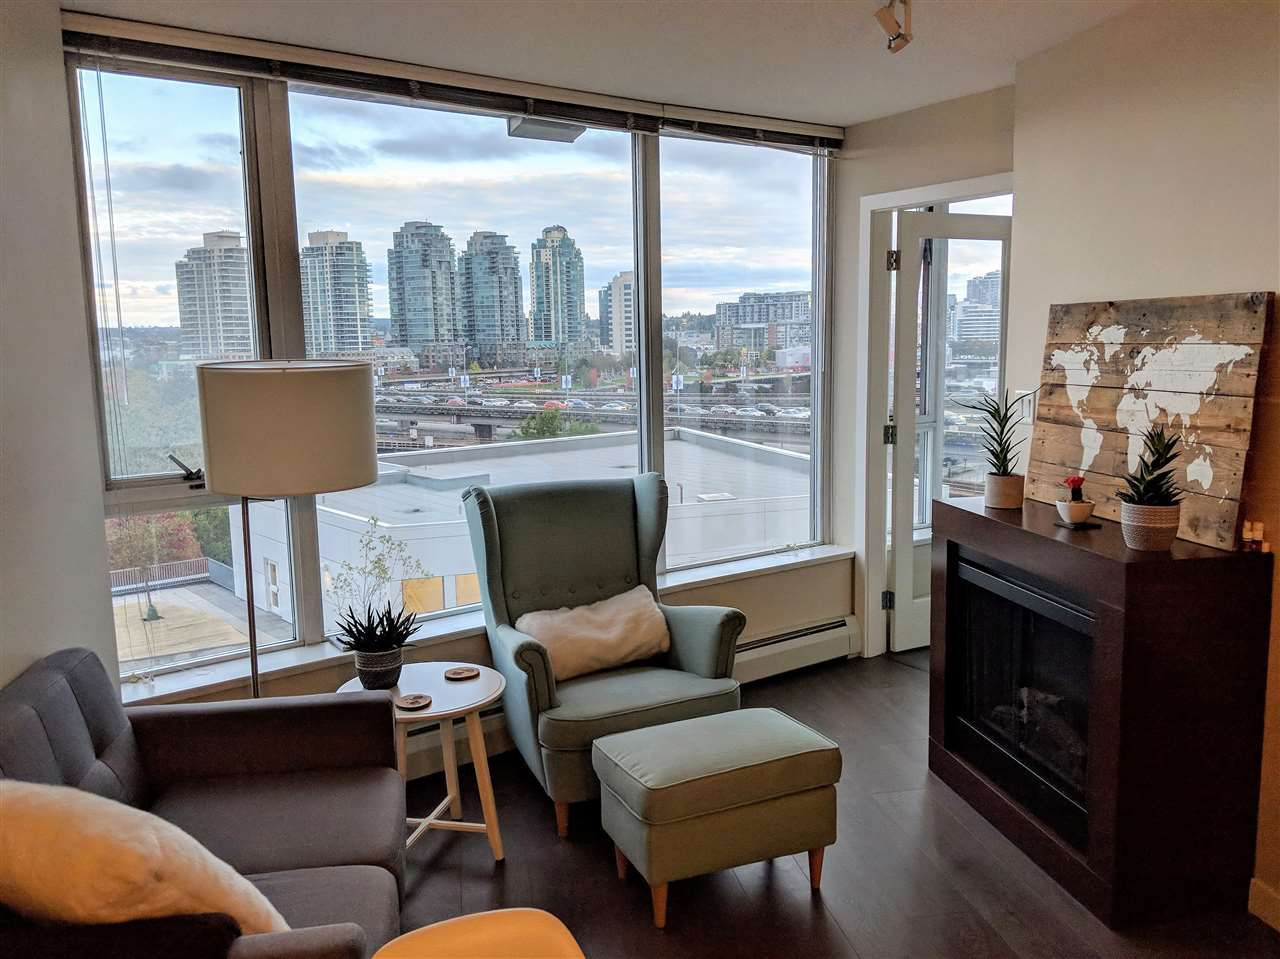 Main Photo: 910 688 ABBOTT Street in Vancouver: Downtown VW Condo for sale (Vancouver West)  : MLS®# R2313580